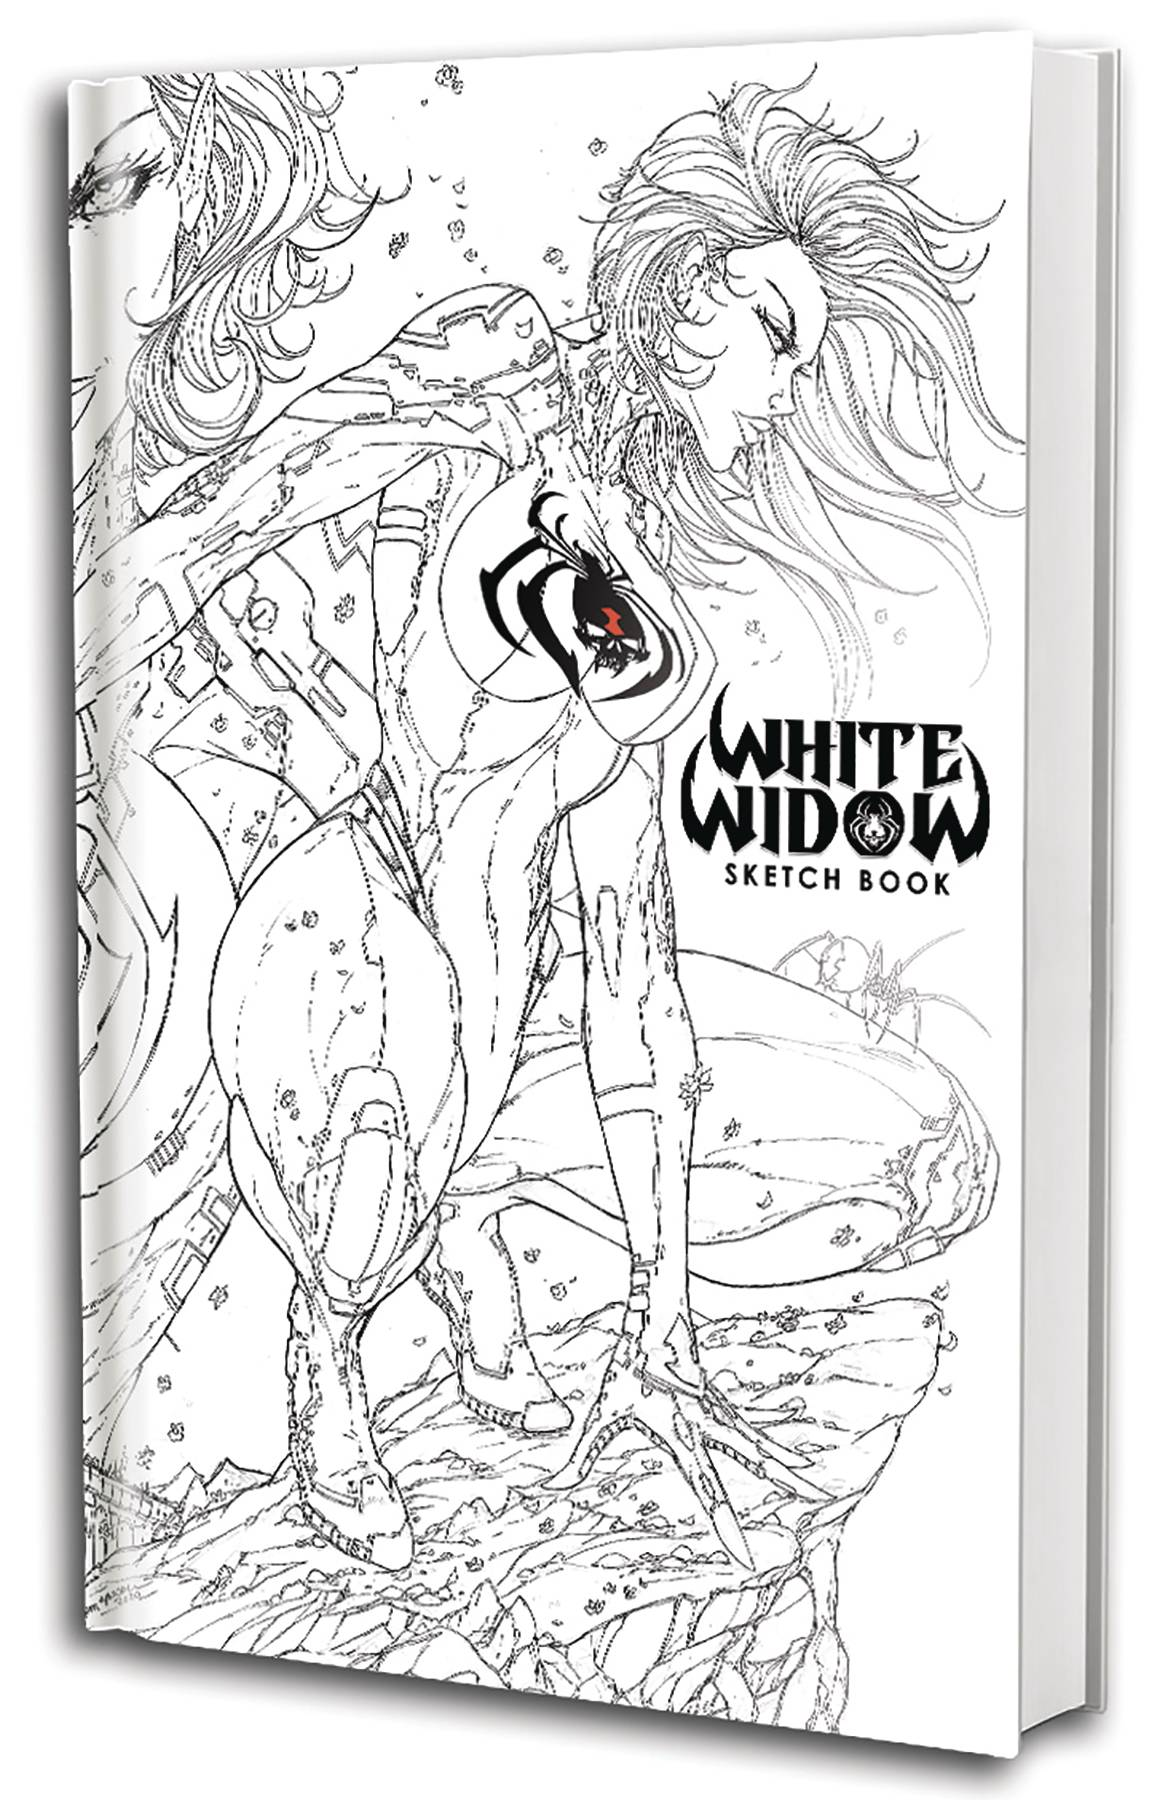 WHITE WIDOW SKETCH BOOK VOL 01